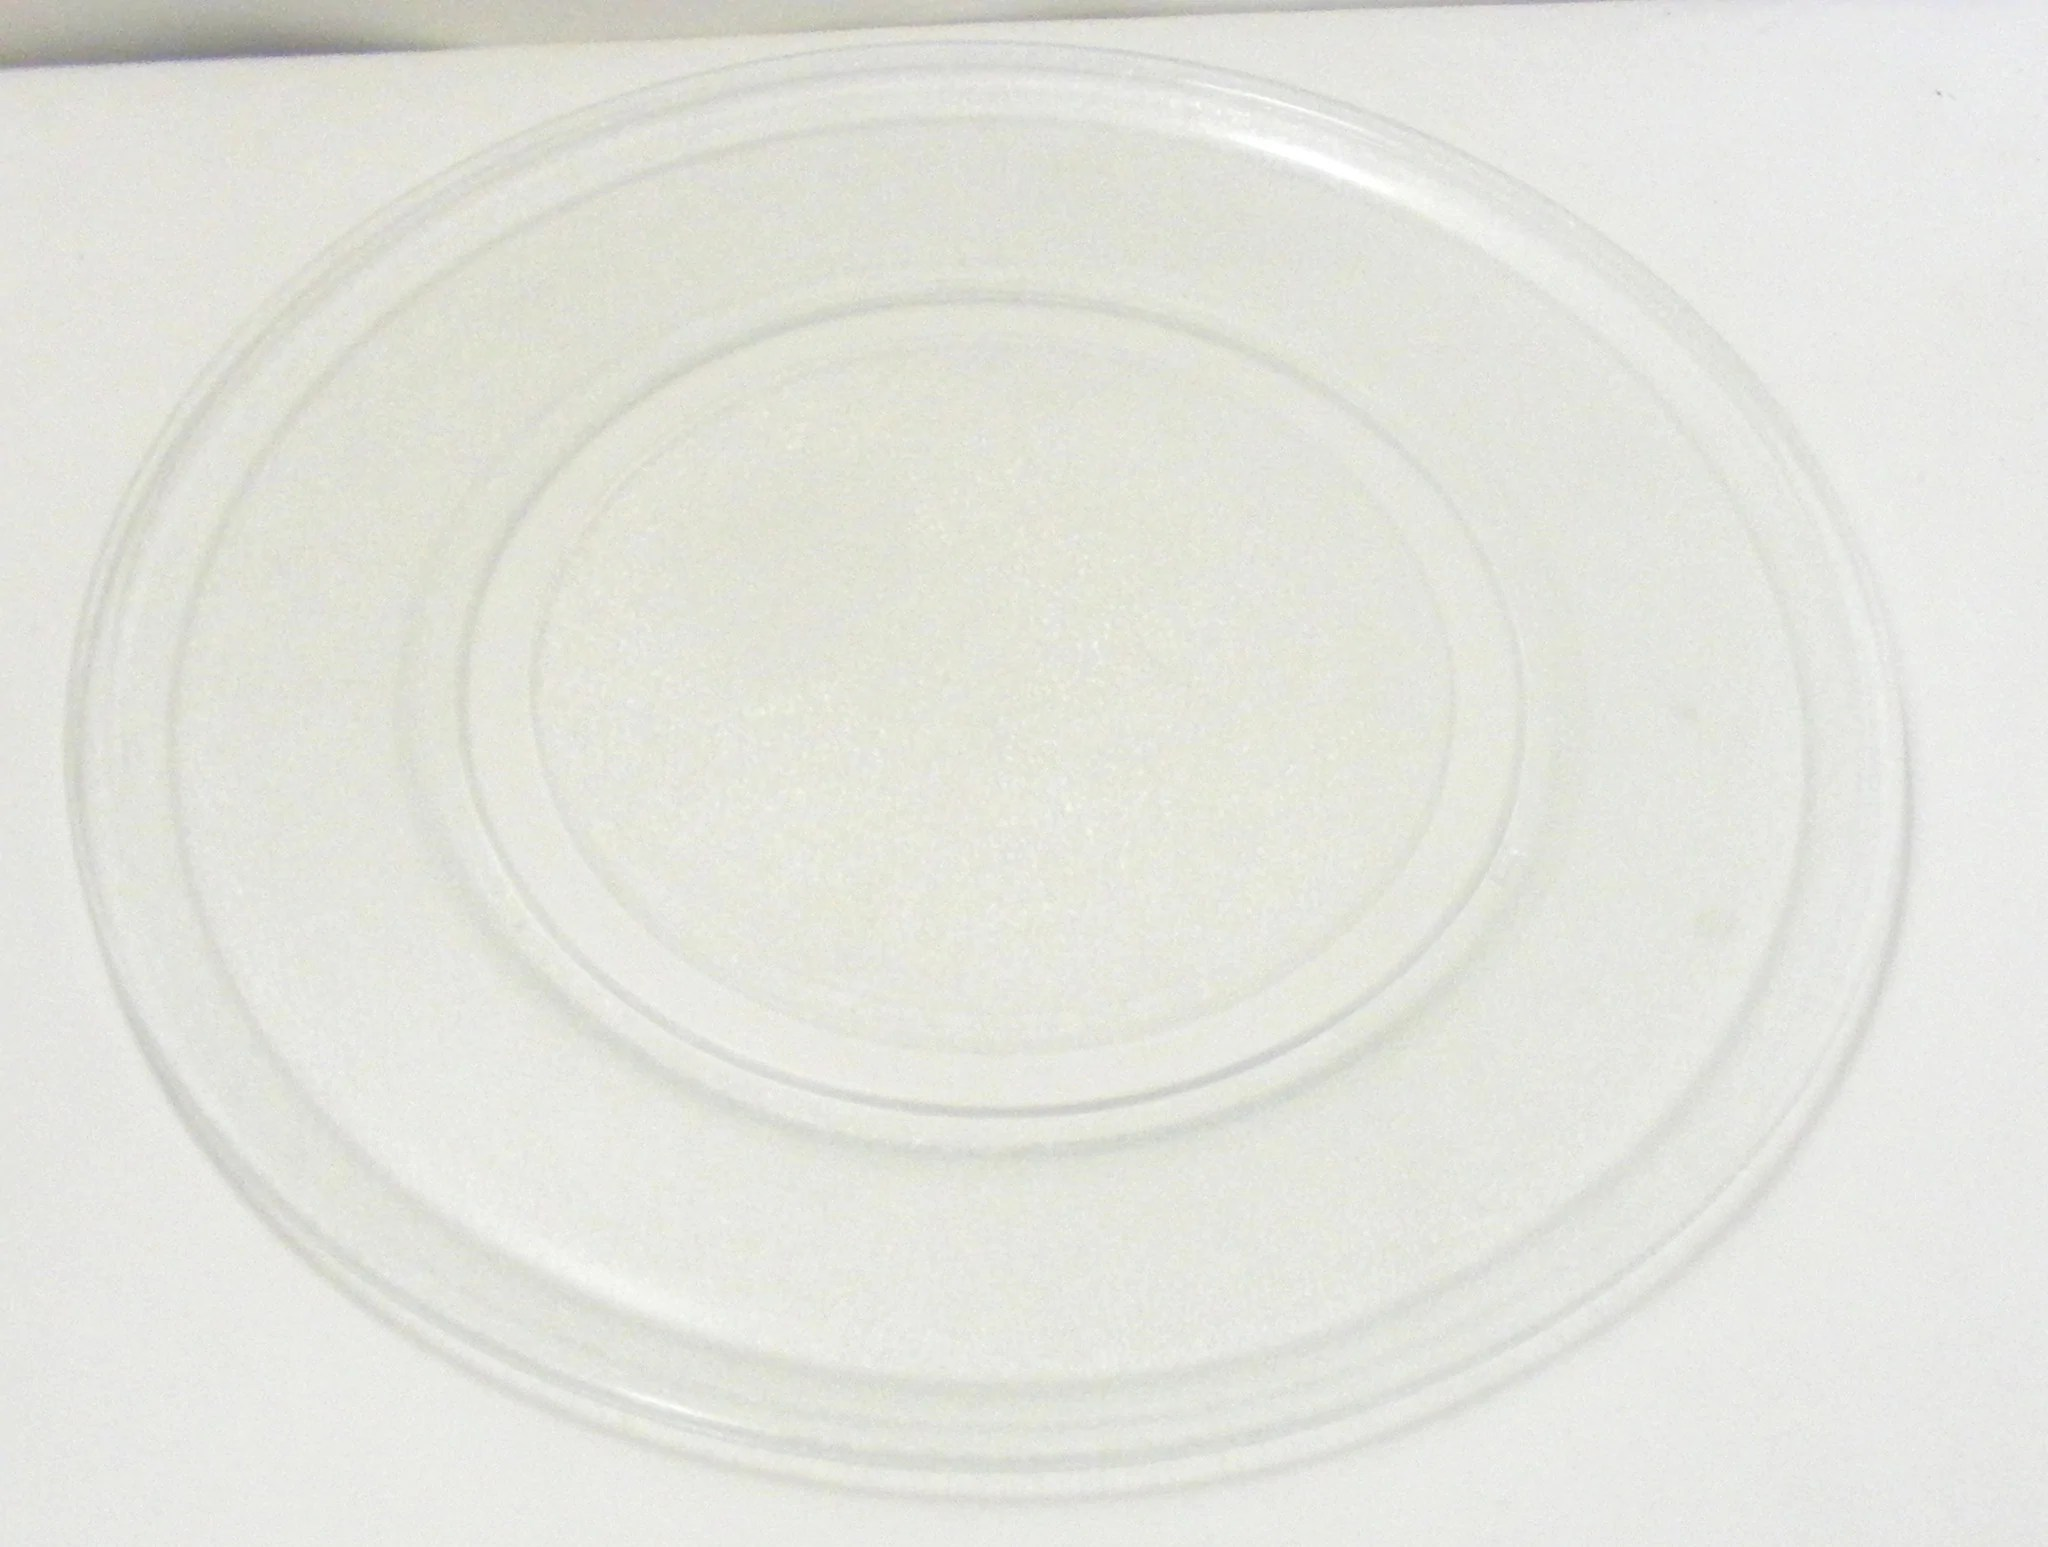 wb49x10189 ge microwave glass turntable tray